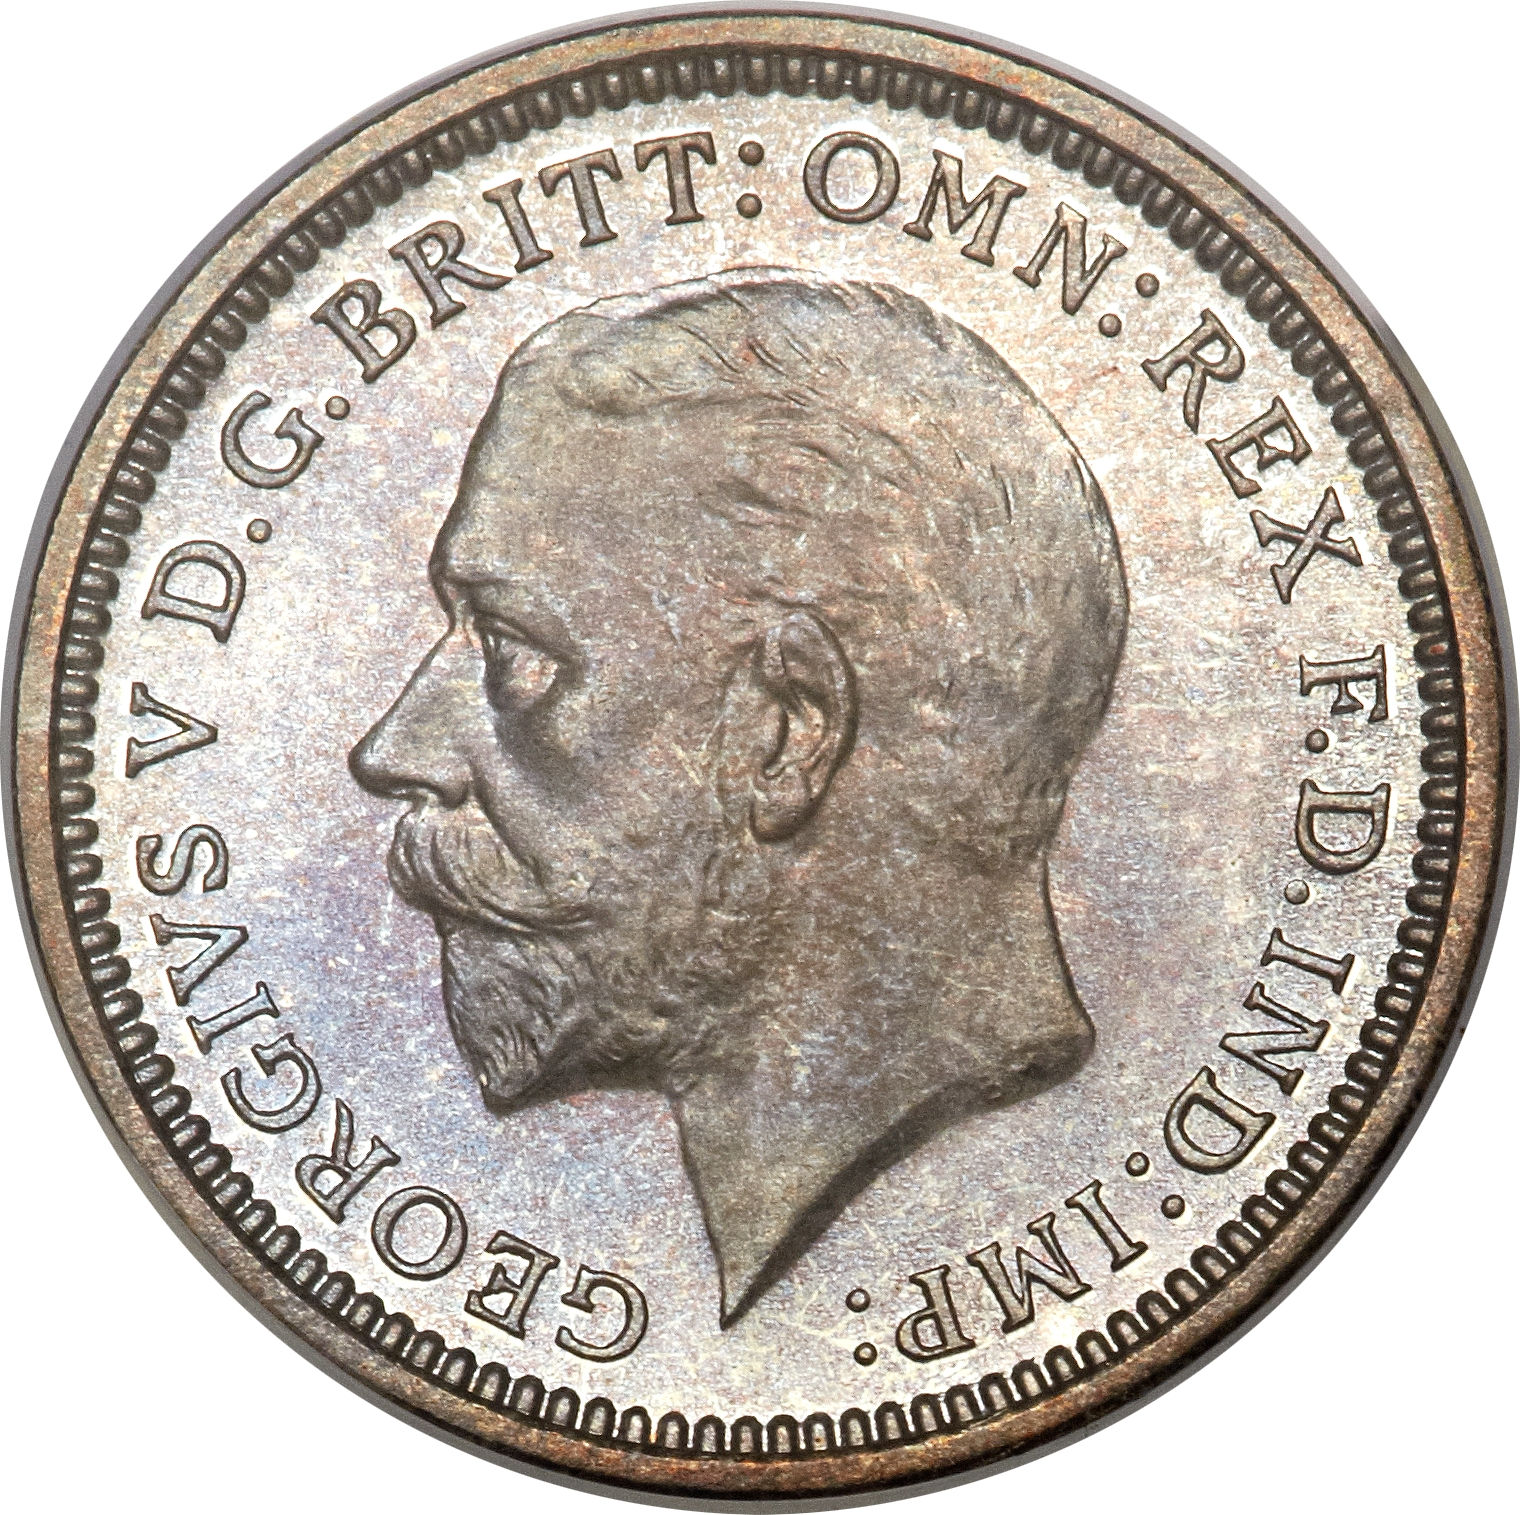 Great Britain 3 Pence silver coin 1936 km#831 George V a3